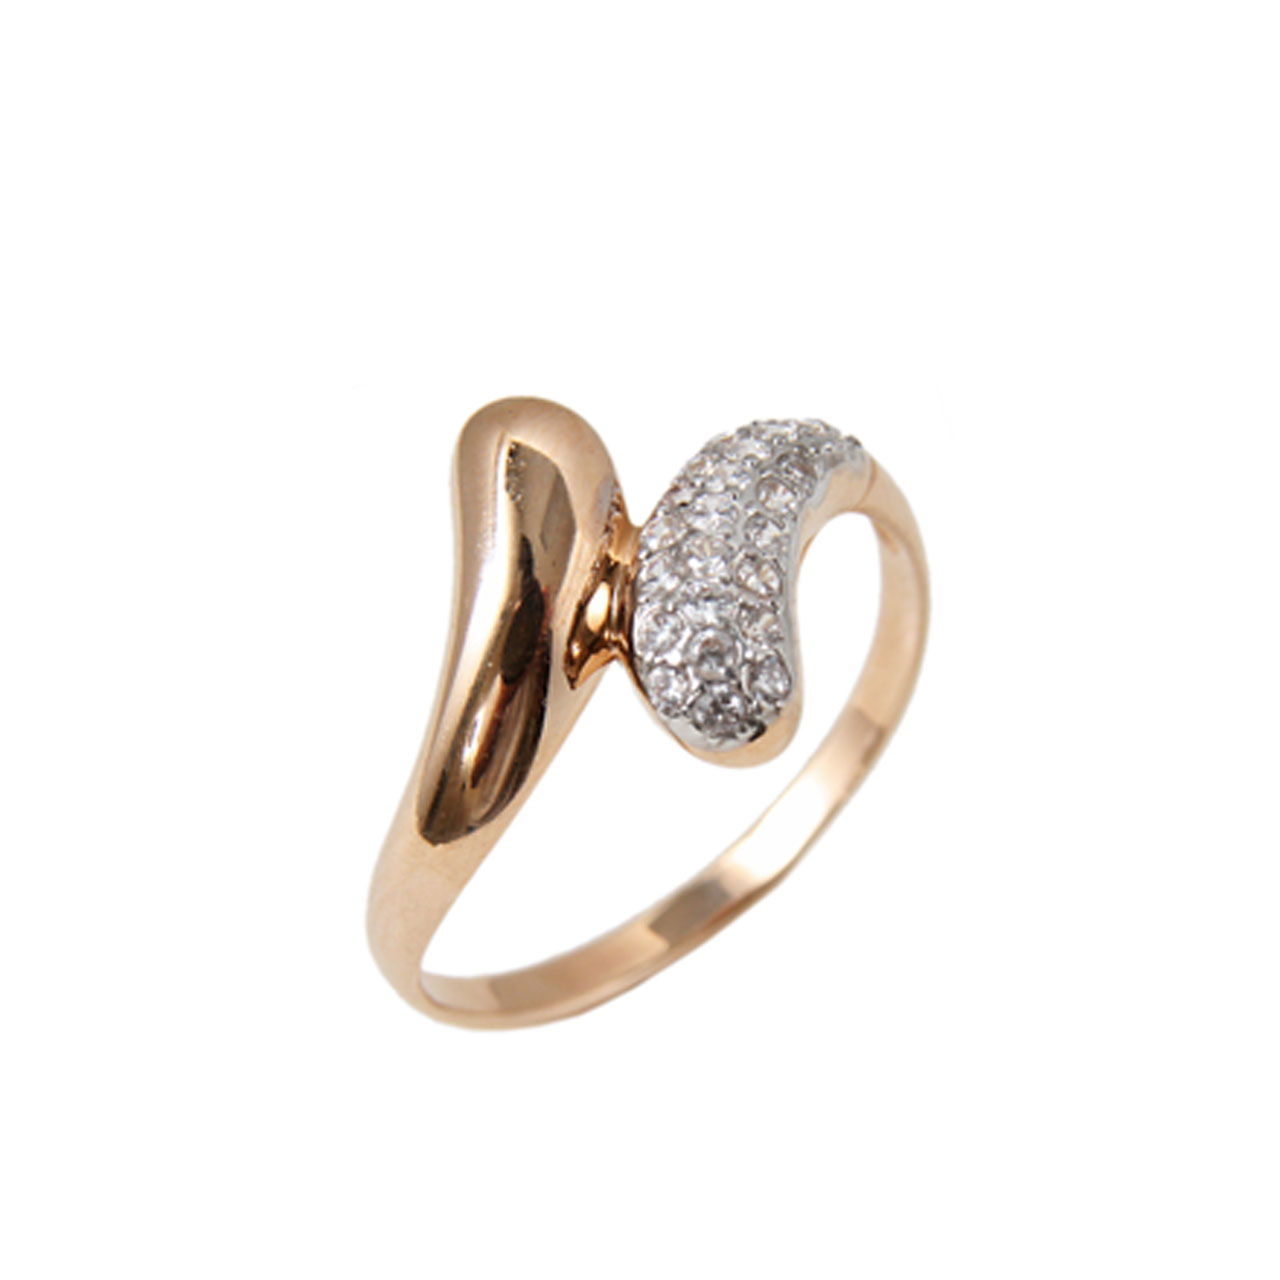 Guilloche-pave rose gold ring 1